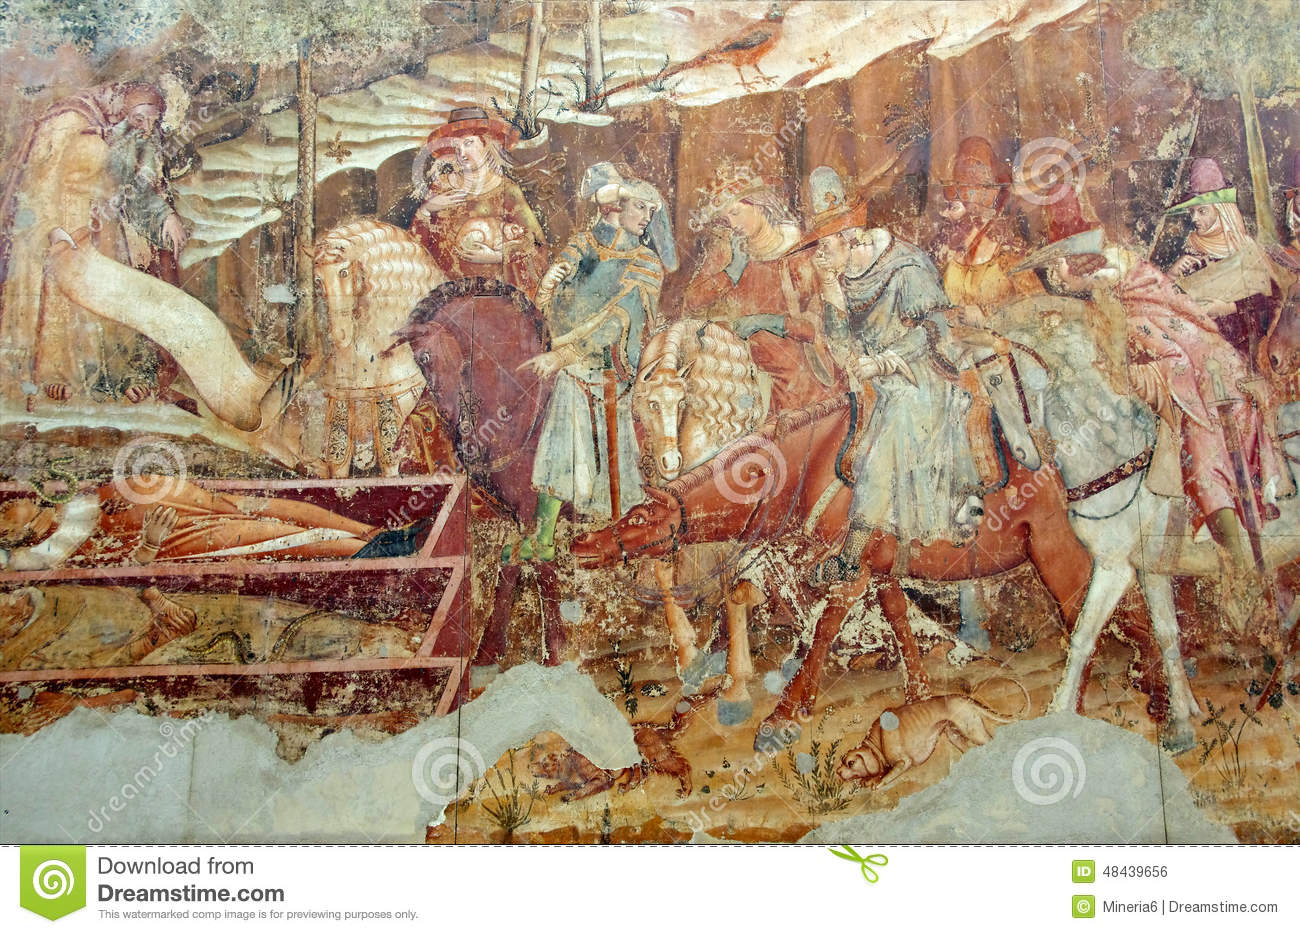 religious wall painting stock photo image 48439656 ancient camposanto cemetery christian italy mural painting pisa religious wall